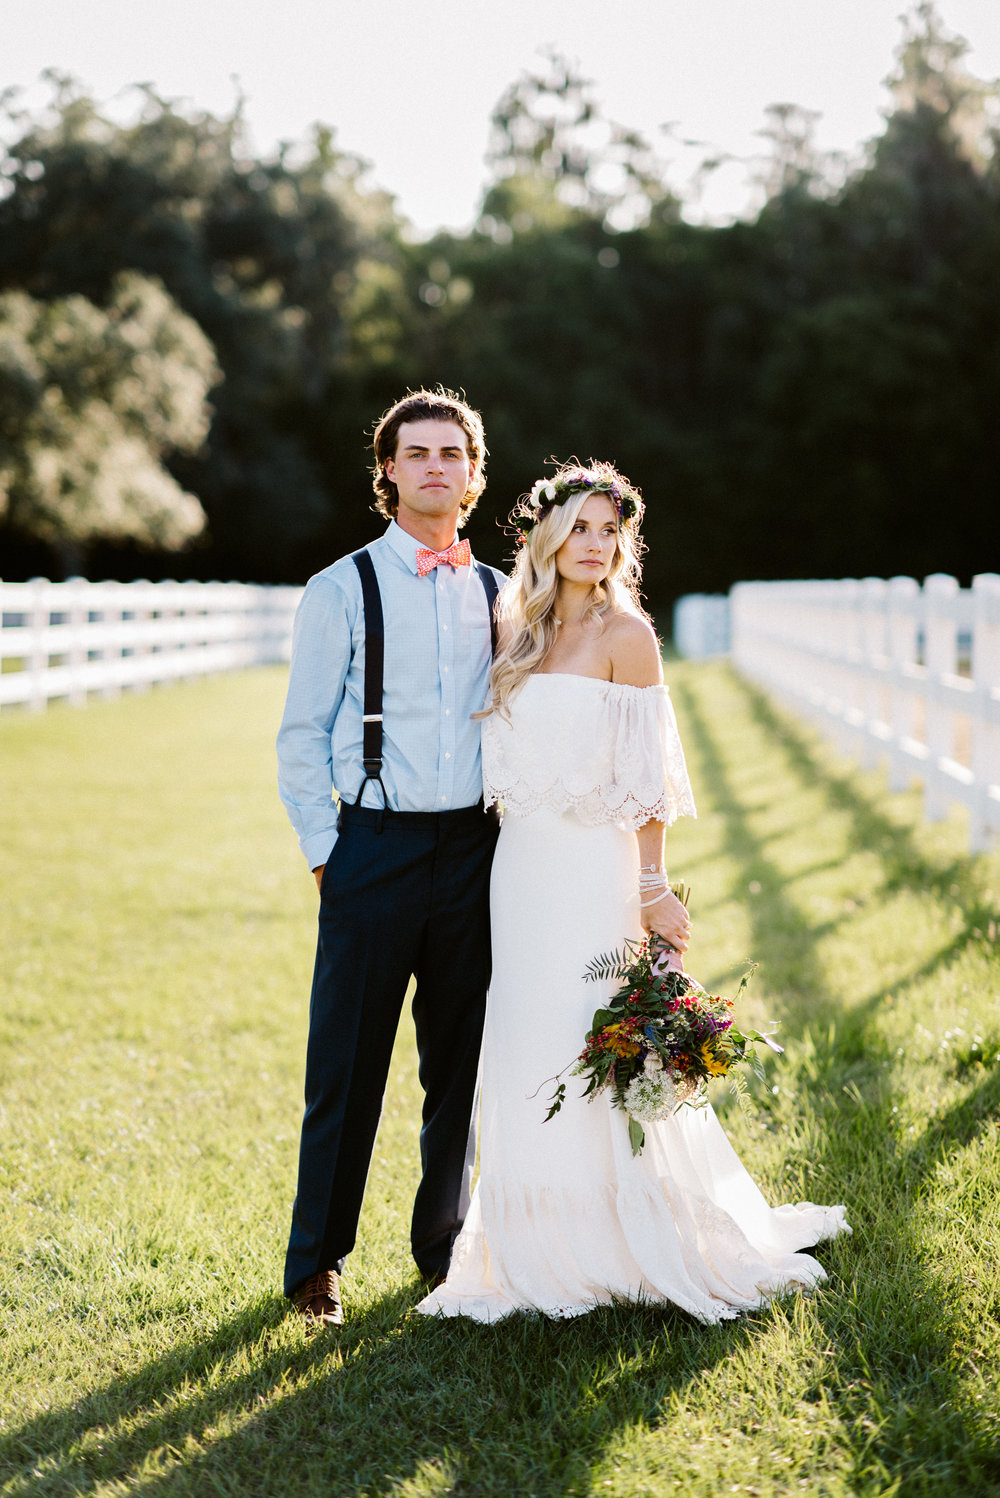 Rebecca-Read-Photography-brooke-jeremy-lang-farm-wedding-daughters-of-simone-lu-boho-wedding-southern-wedding-ivory-and-beau-bridal-boutique-savannah-bridal-boutique-savannah-wedding-dresses-lowcountry-bride-savannah-wedding-planner-24.jpg